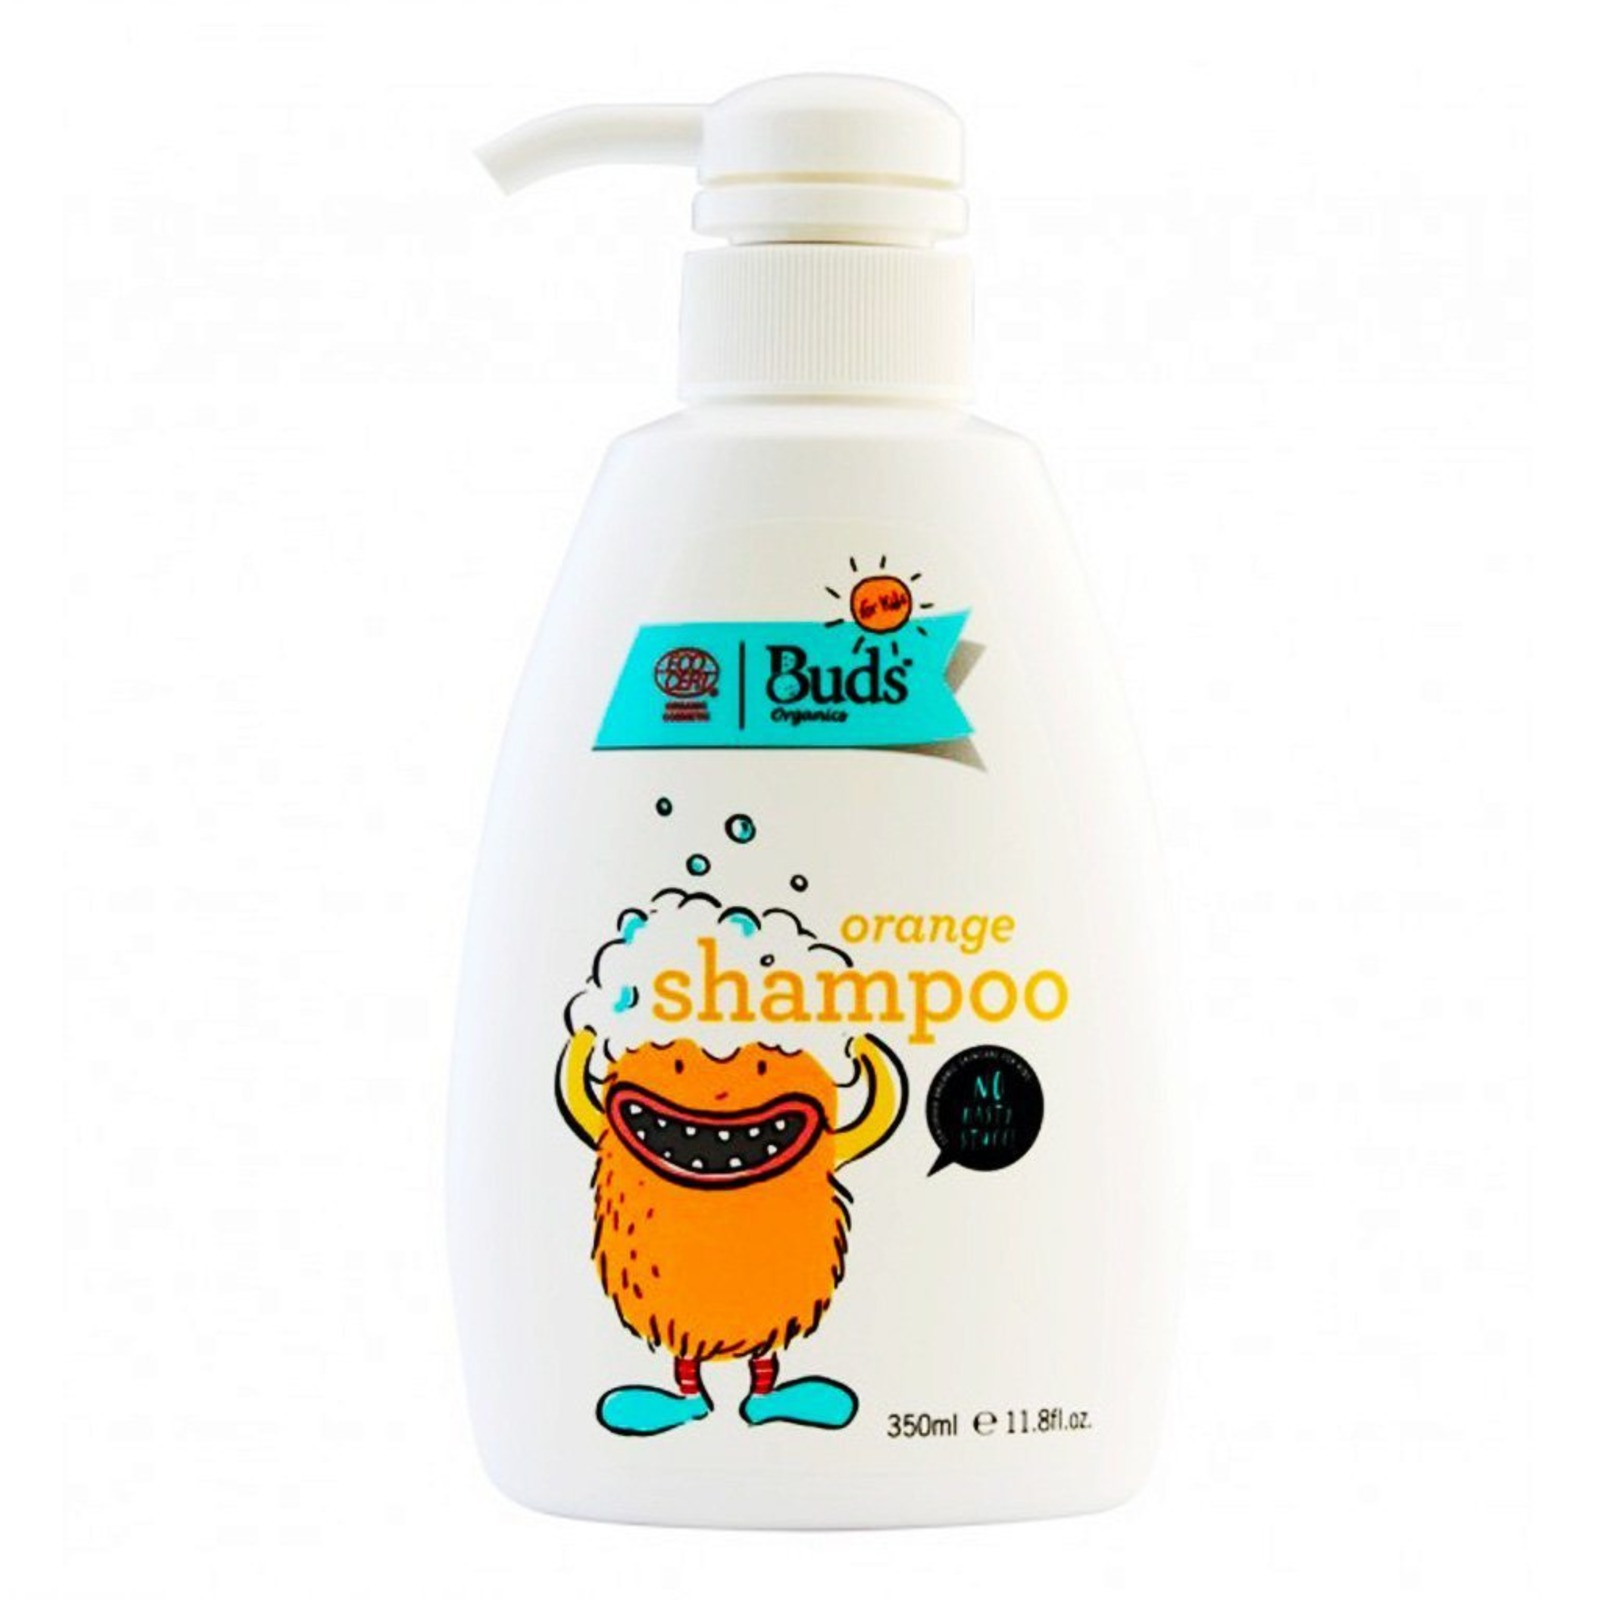 Buds Organics Bfk Shampoo - Orange